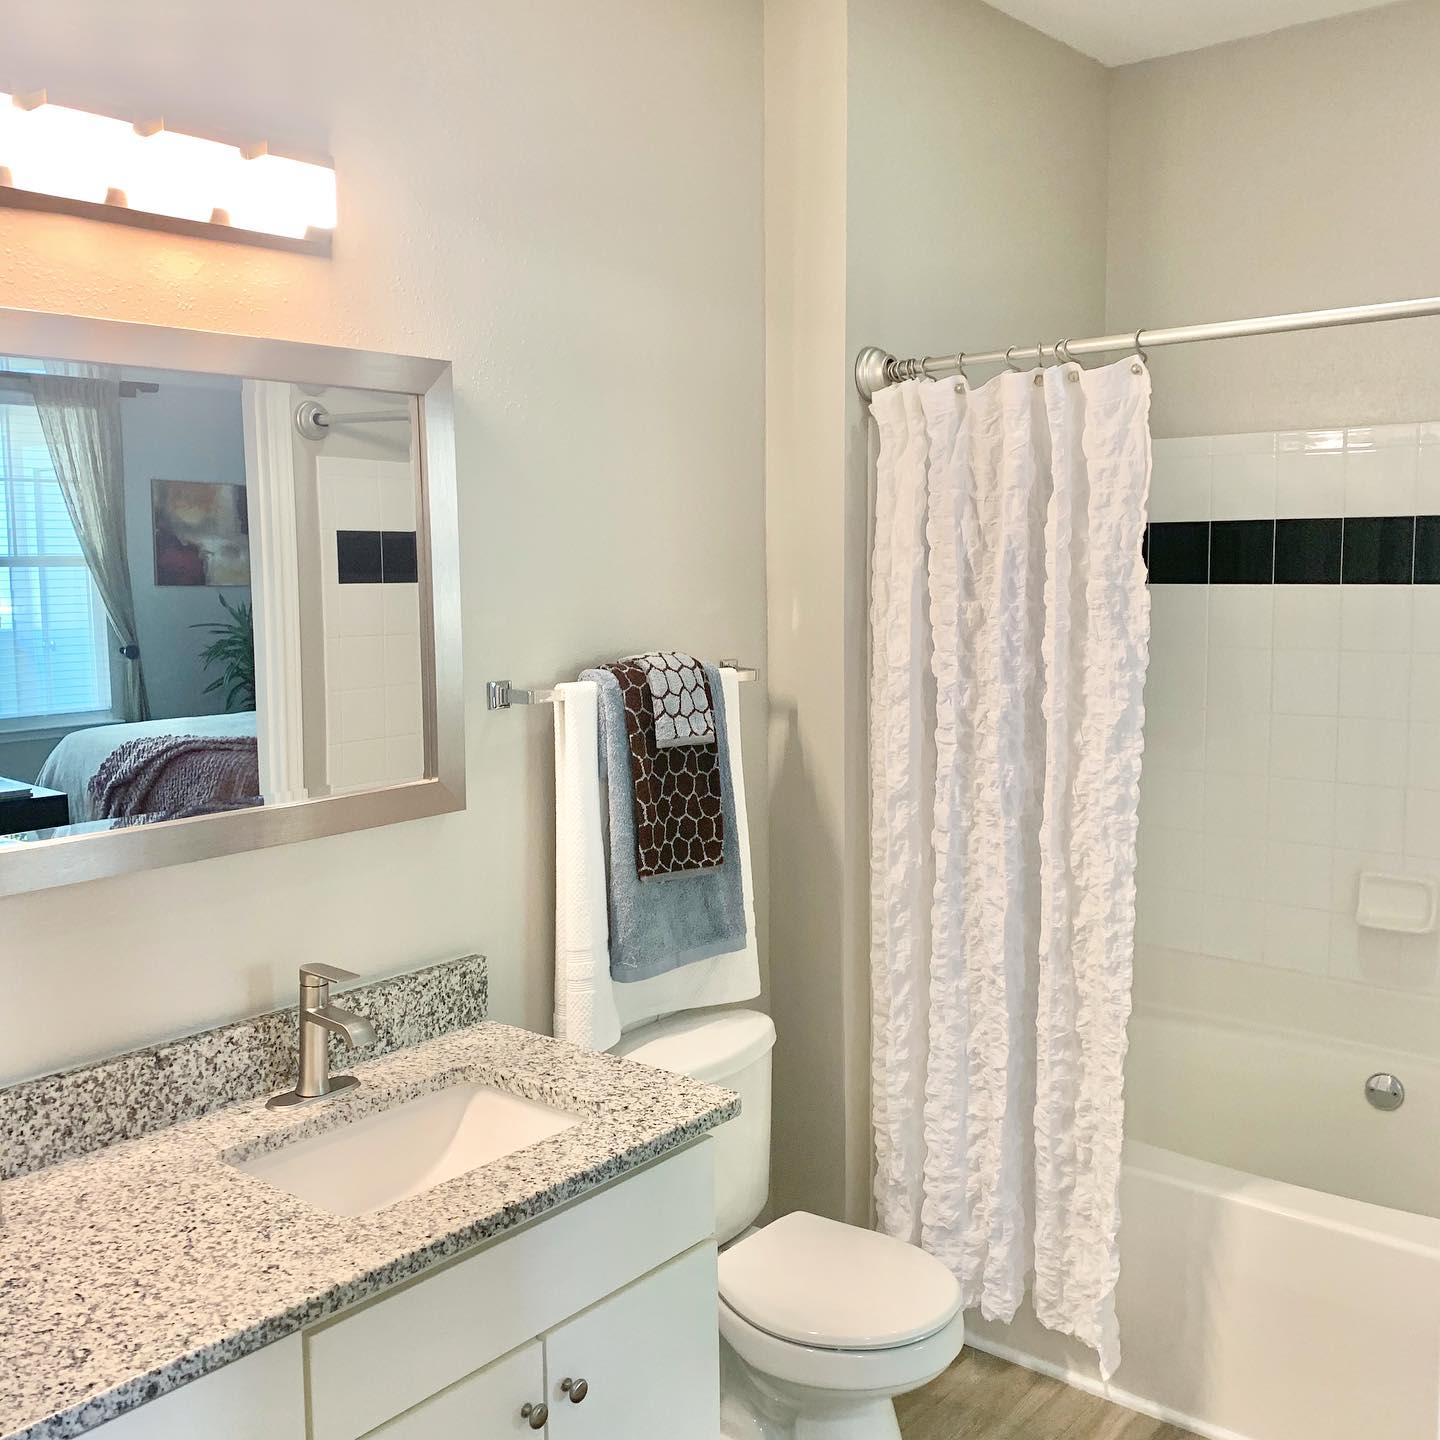 Southwest Raleigh, NC Apartments For Rent